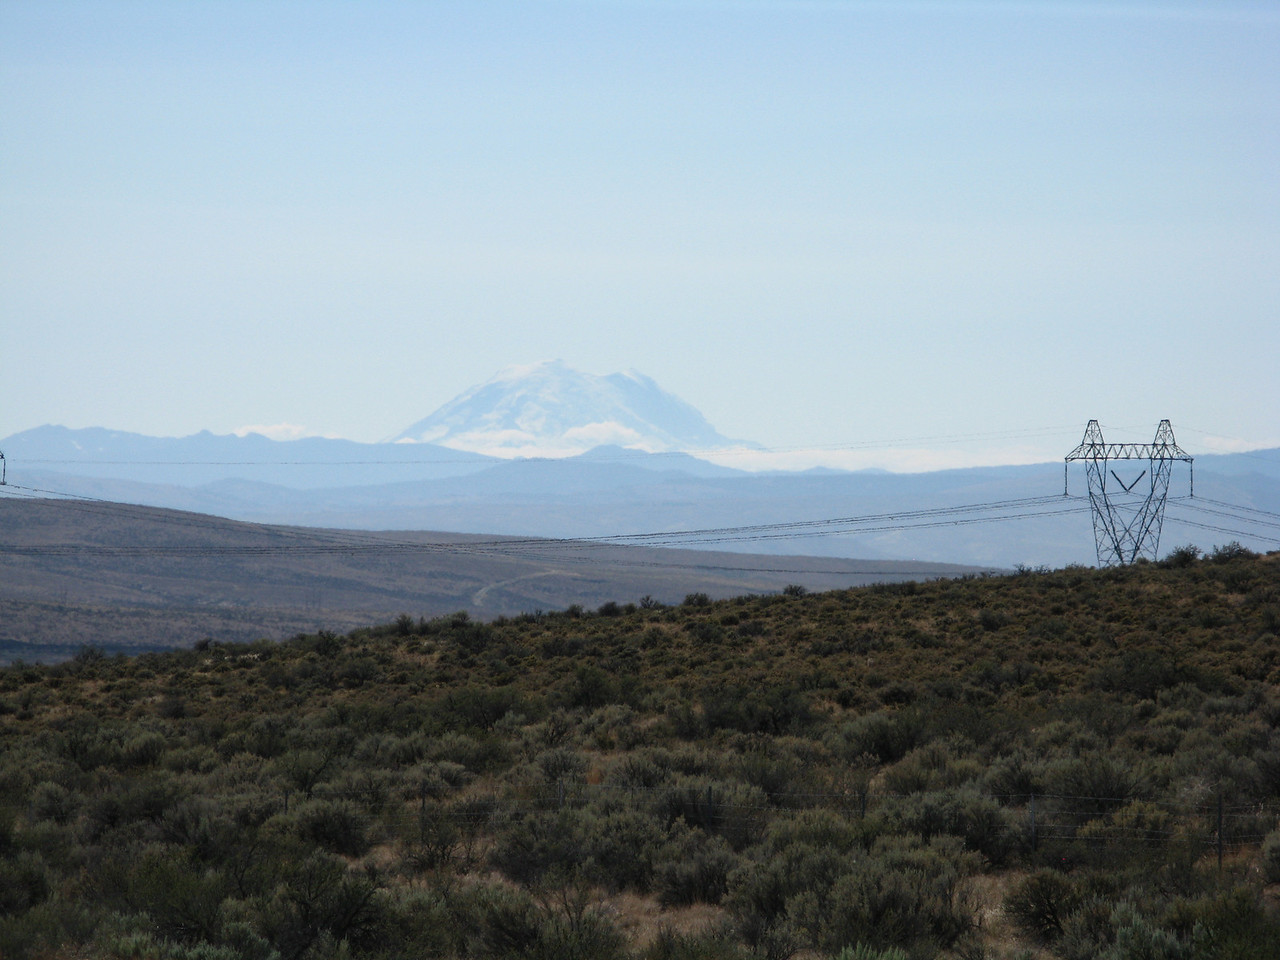 Looking west from the rest area, away from the wind farm to the north, we can see the east flank of Mount Rainer, which is at least 100 miles away.